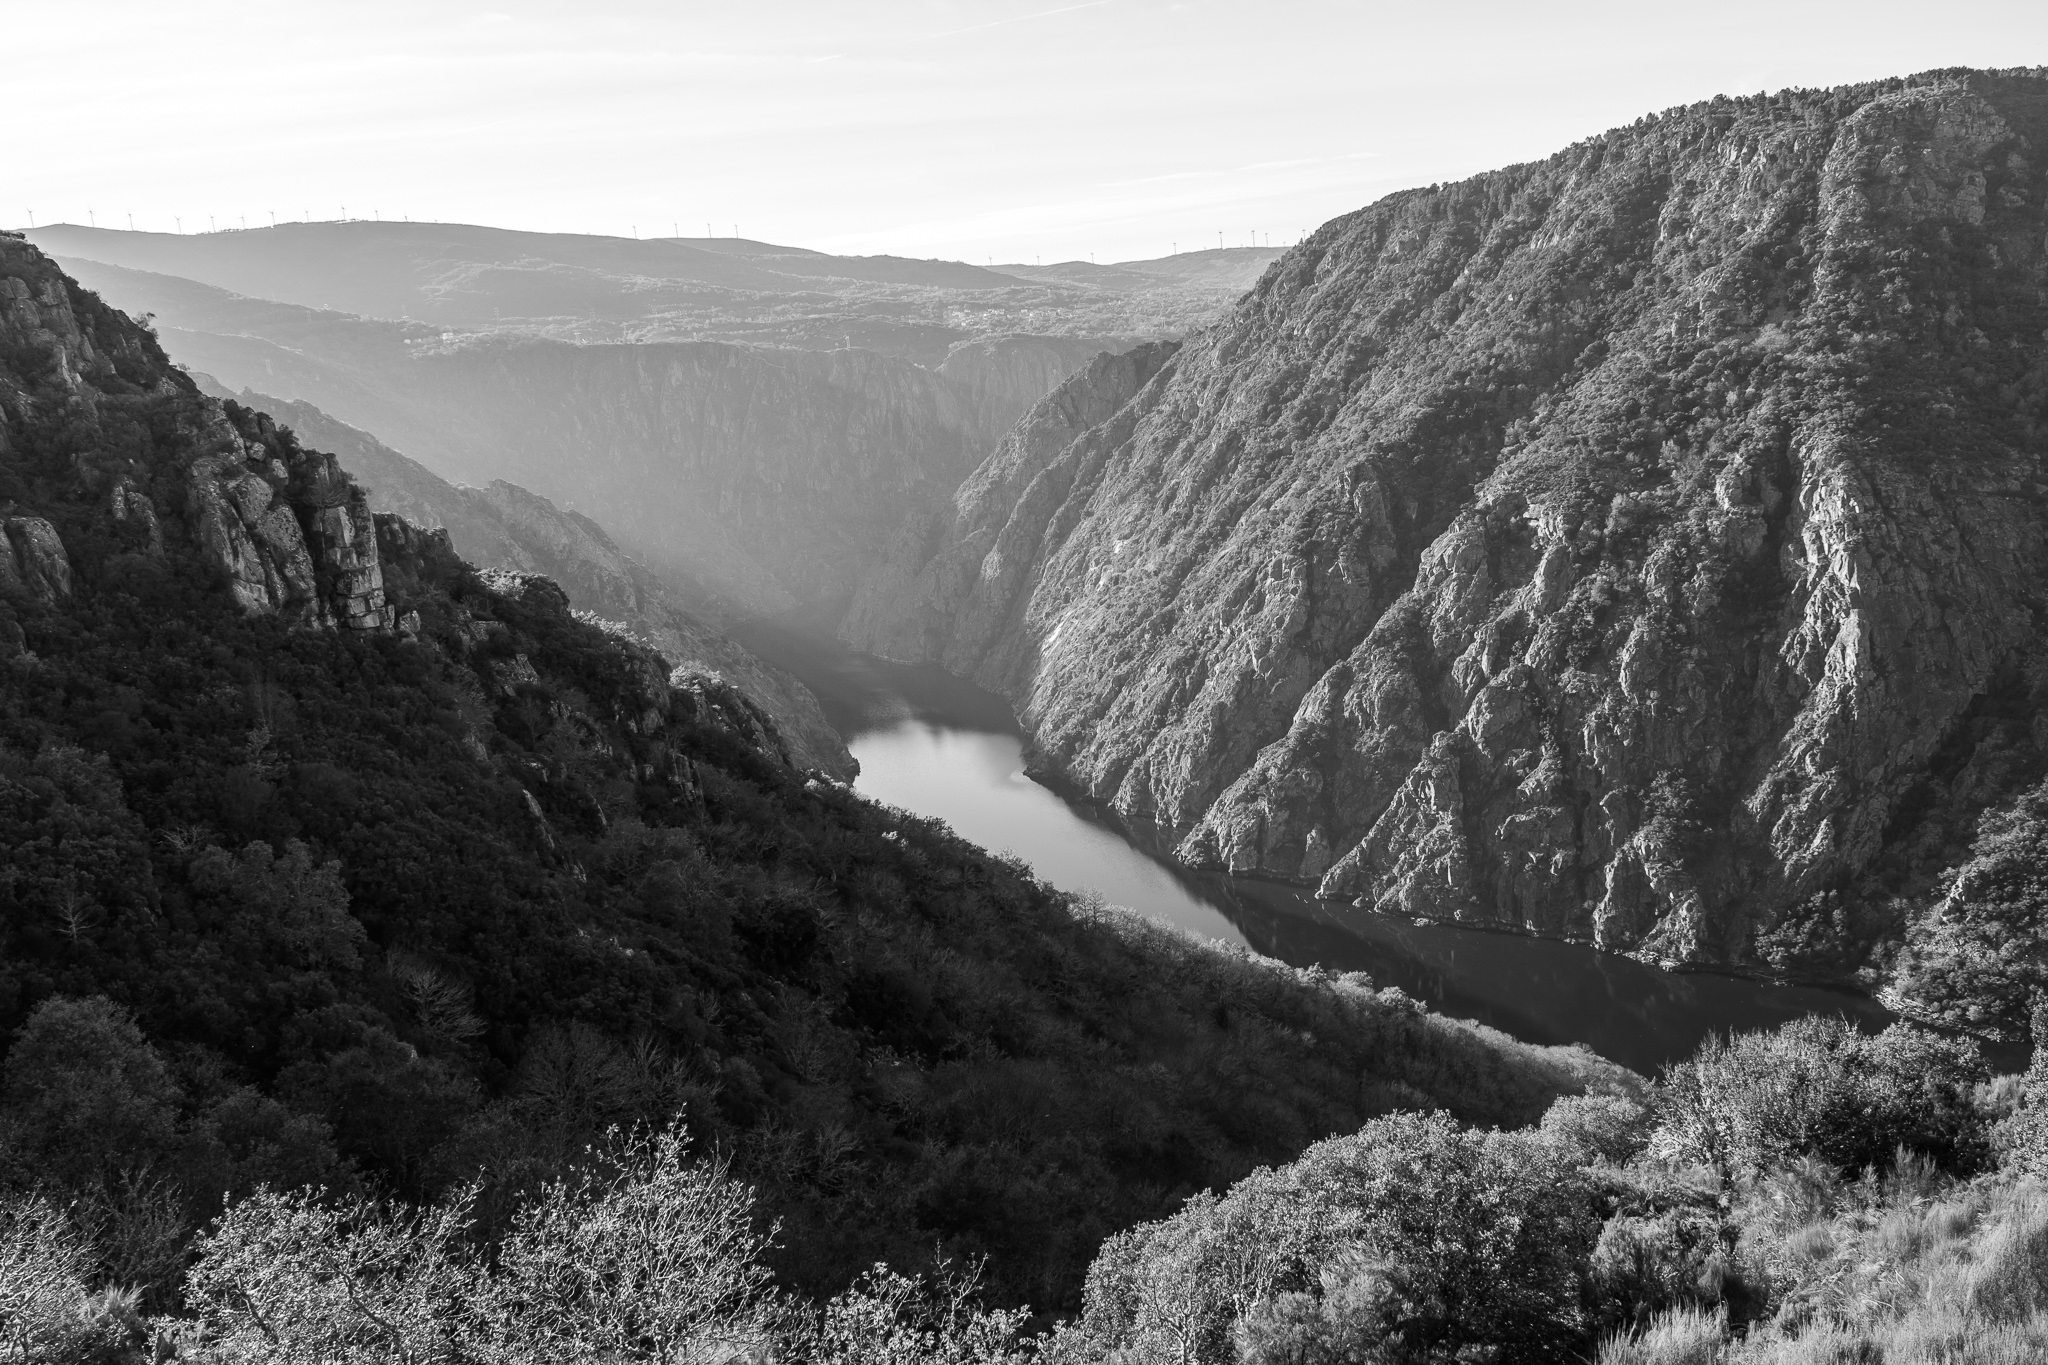 At the encounter of the banks of the rivers Sil and Miño, on the border between the provinces of Lugo and Ourense, are the gorges of the Canyon of the Sil. <br>Natural spaces with 500m deep canyons, small vineyards and different churches and monasteries make up much of the Ribeira Sacra.